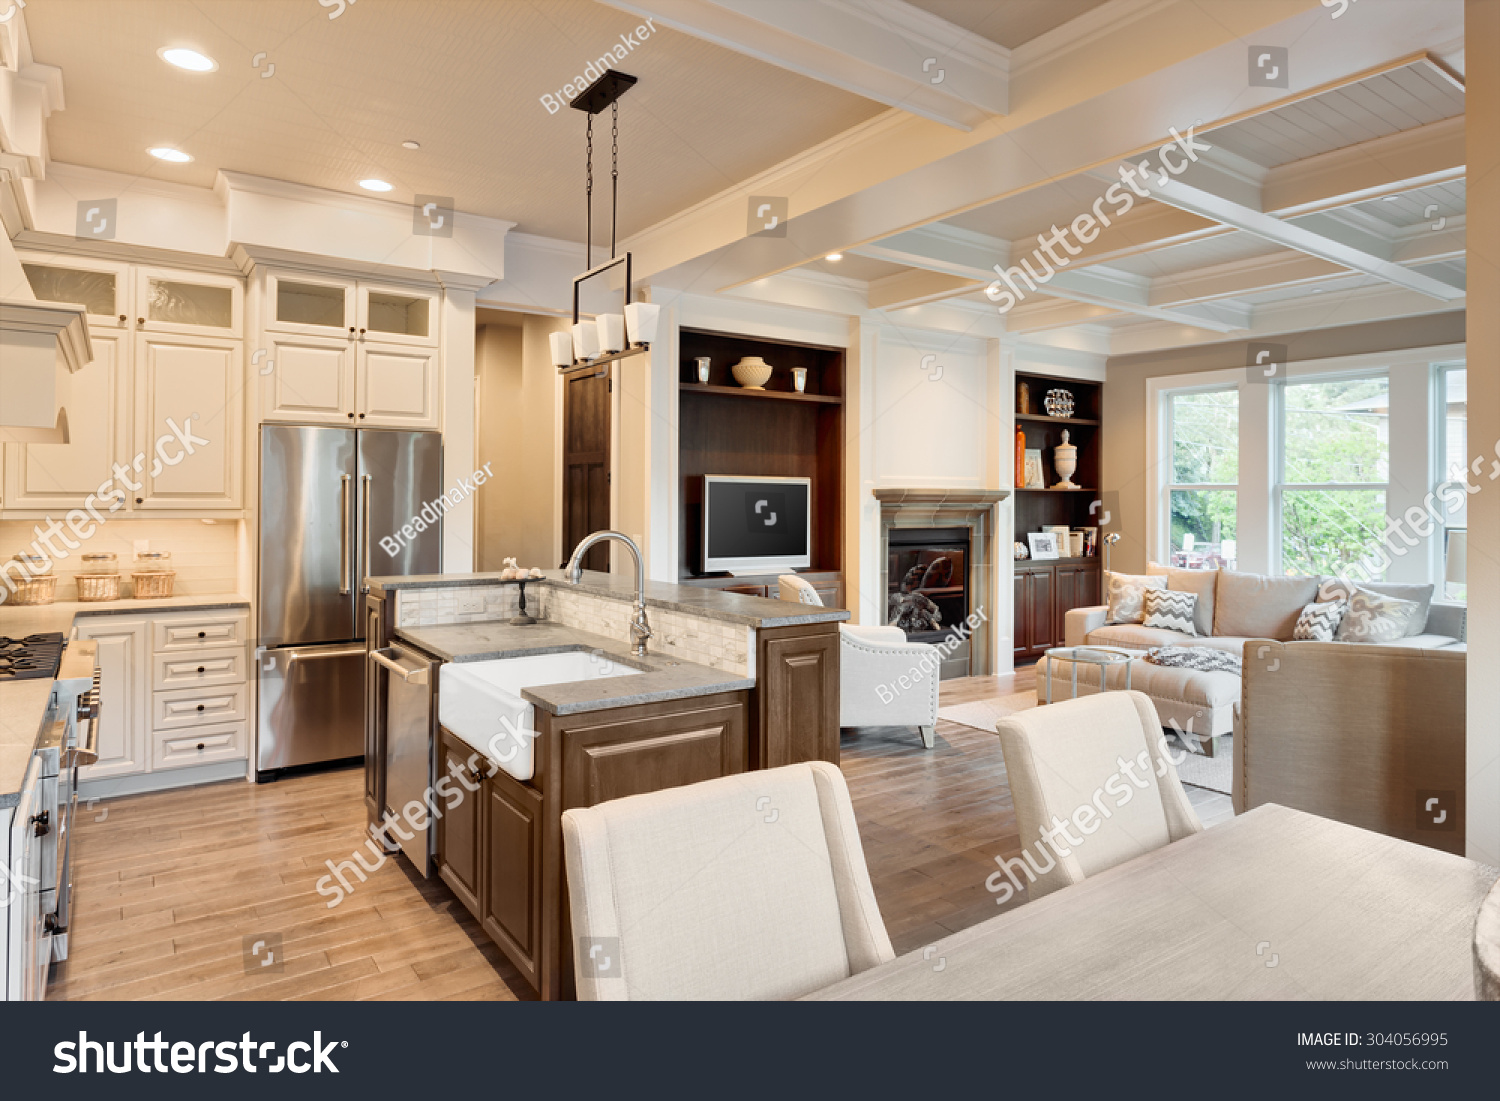 Beautiful Living Room With Hardwood Floors Fireplace And